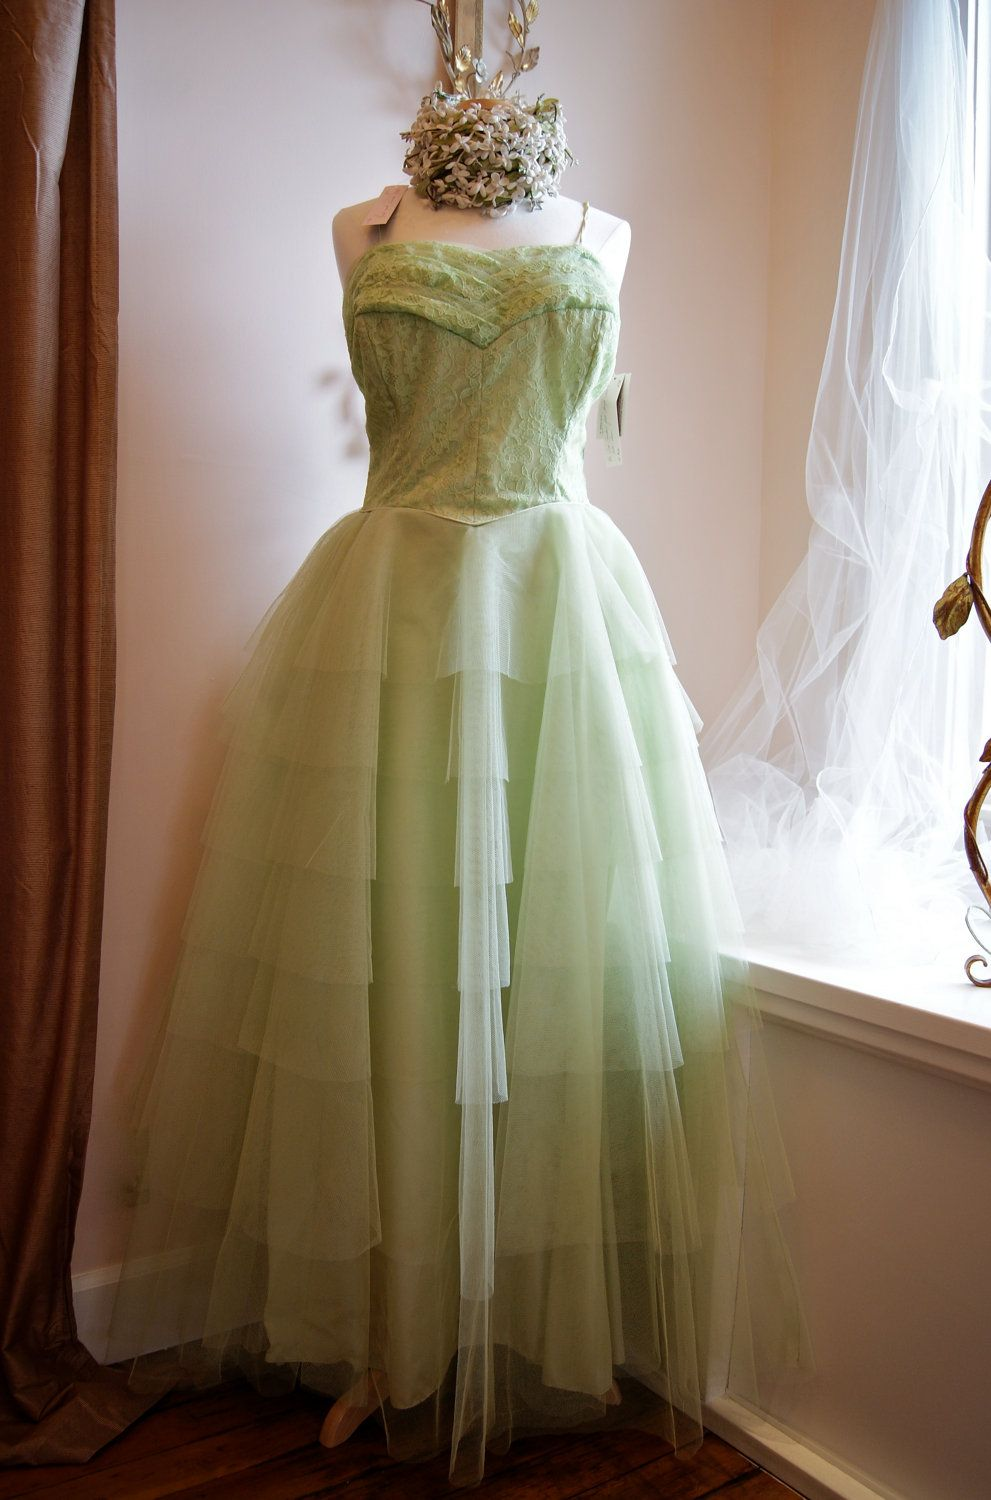 Gorgeous shade of green reserved s dress s party dress